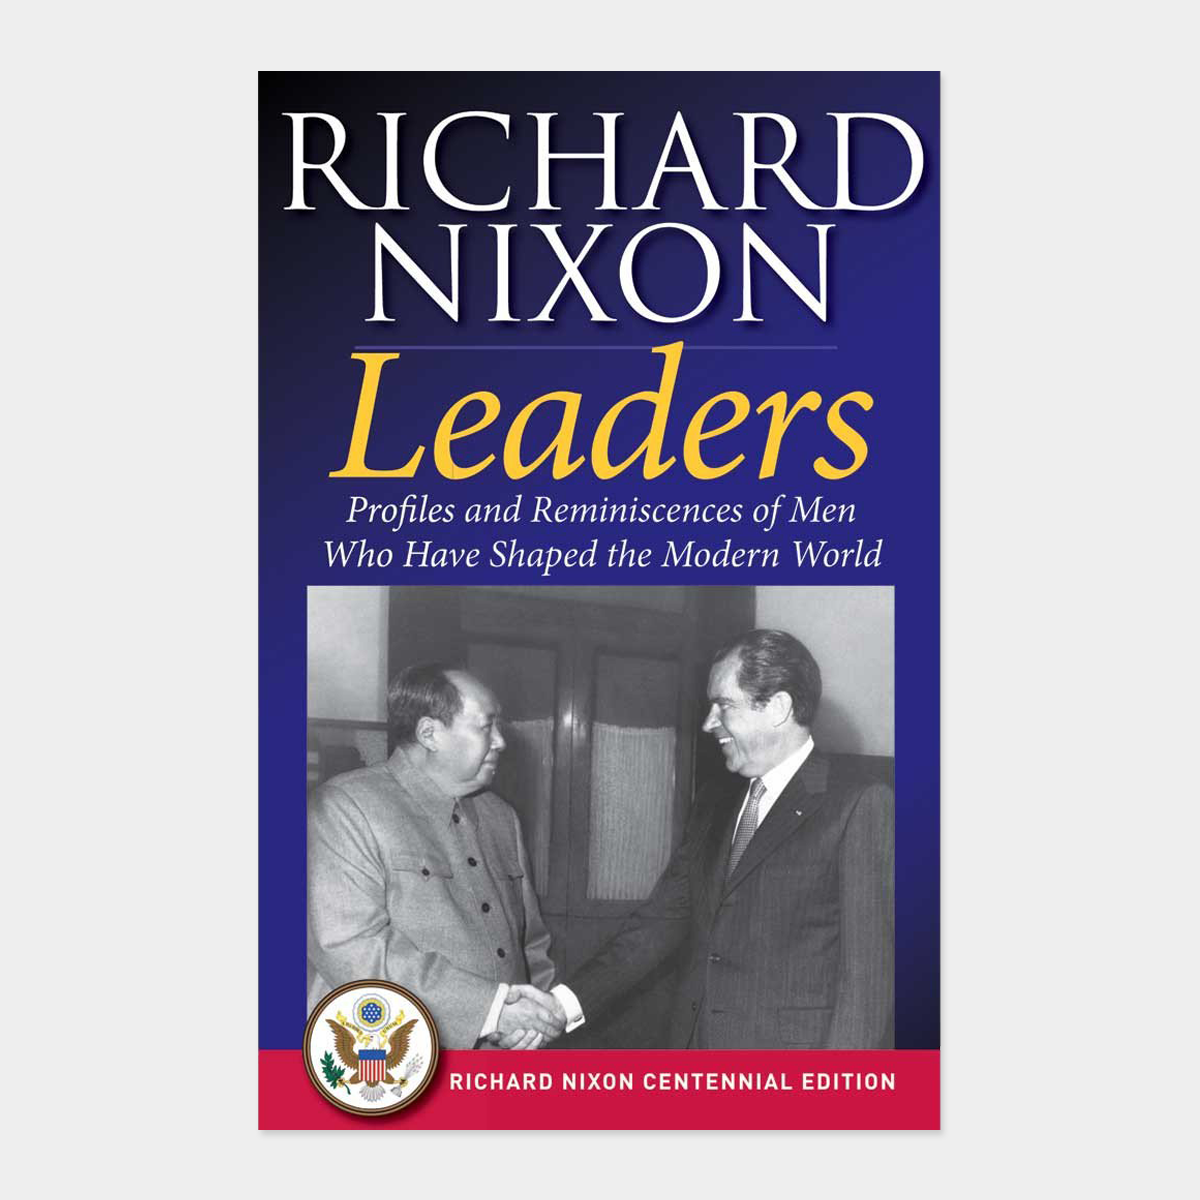 Nixon Ends Convertibility Of Us Dollars To Gold And Announces Wage Price Controls Nixon History Textbook Brigitte Gabriel